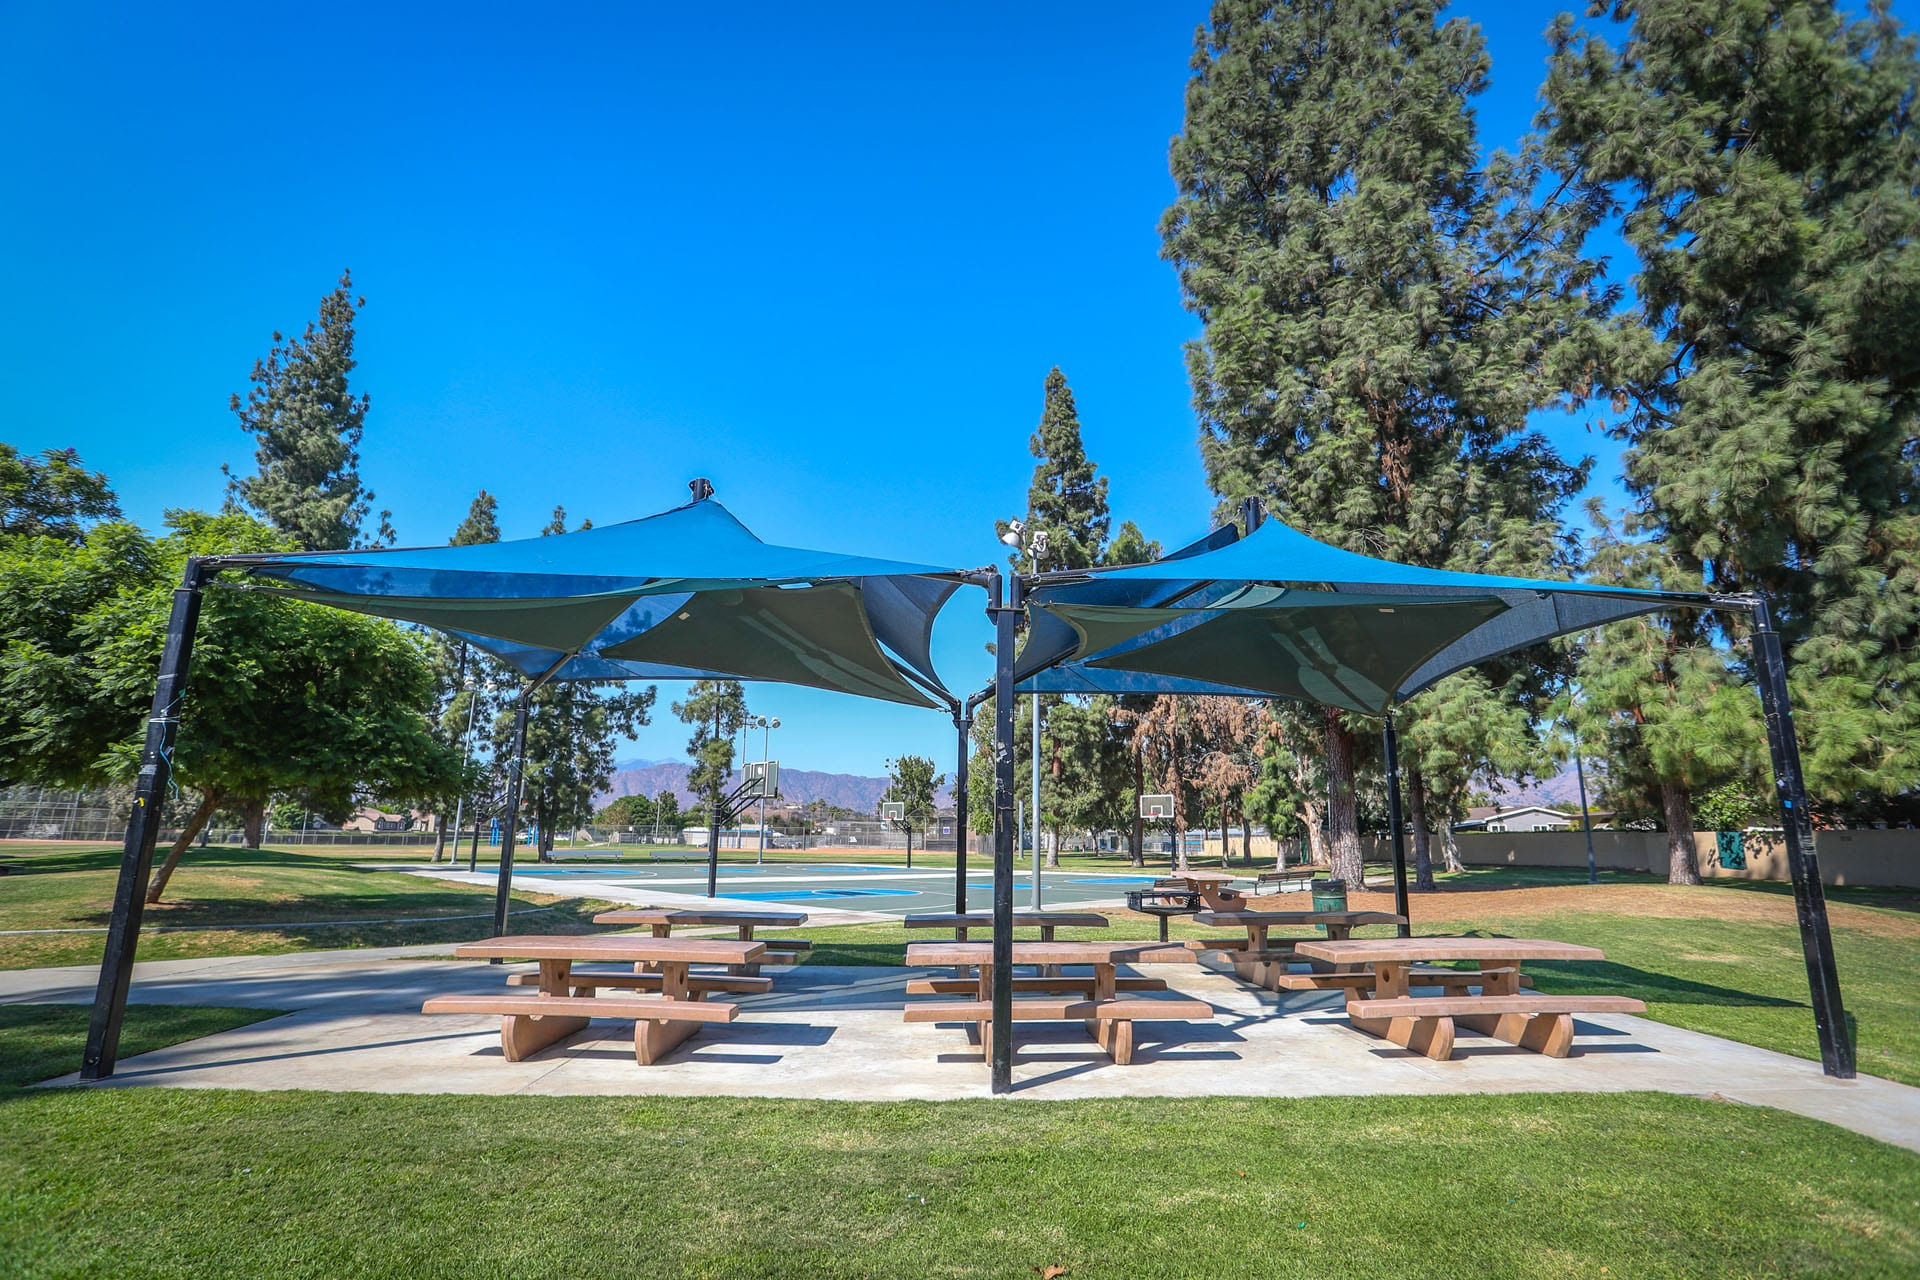 Tents over picnic tables